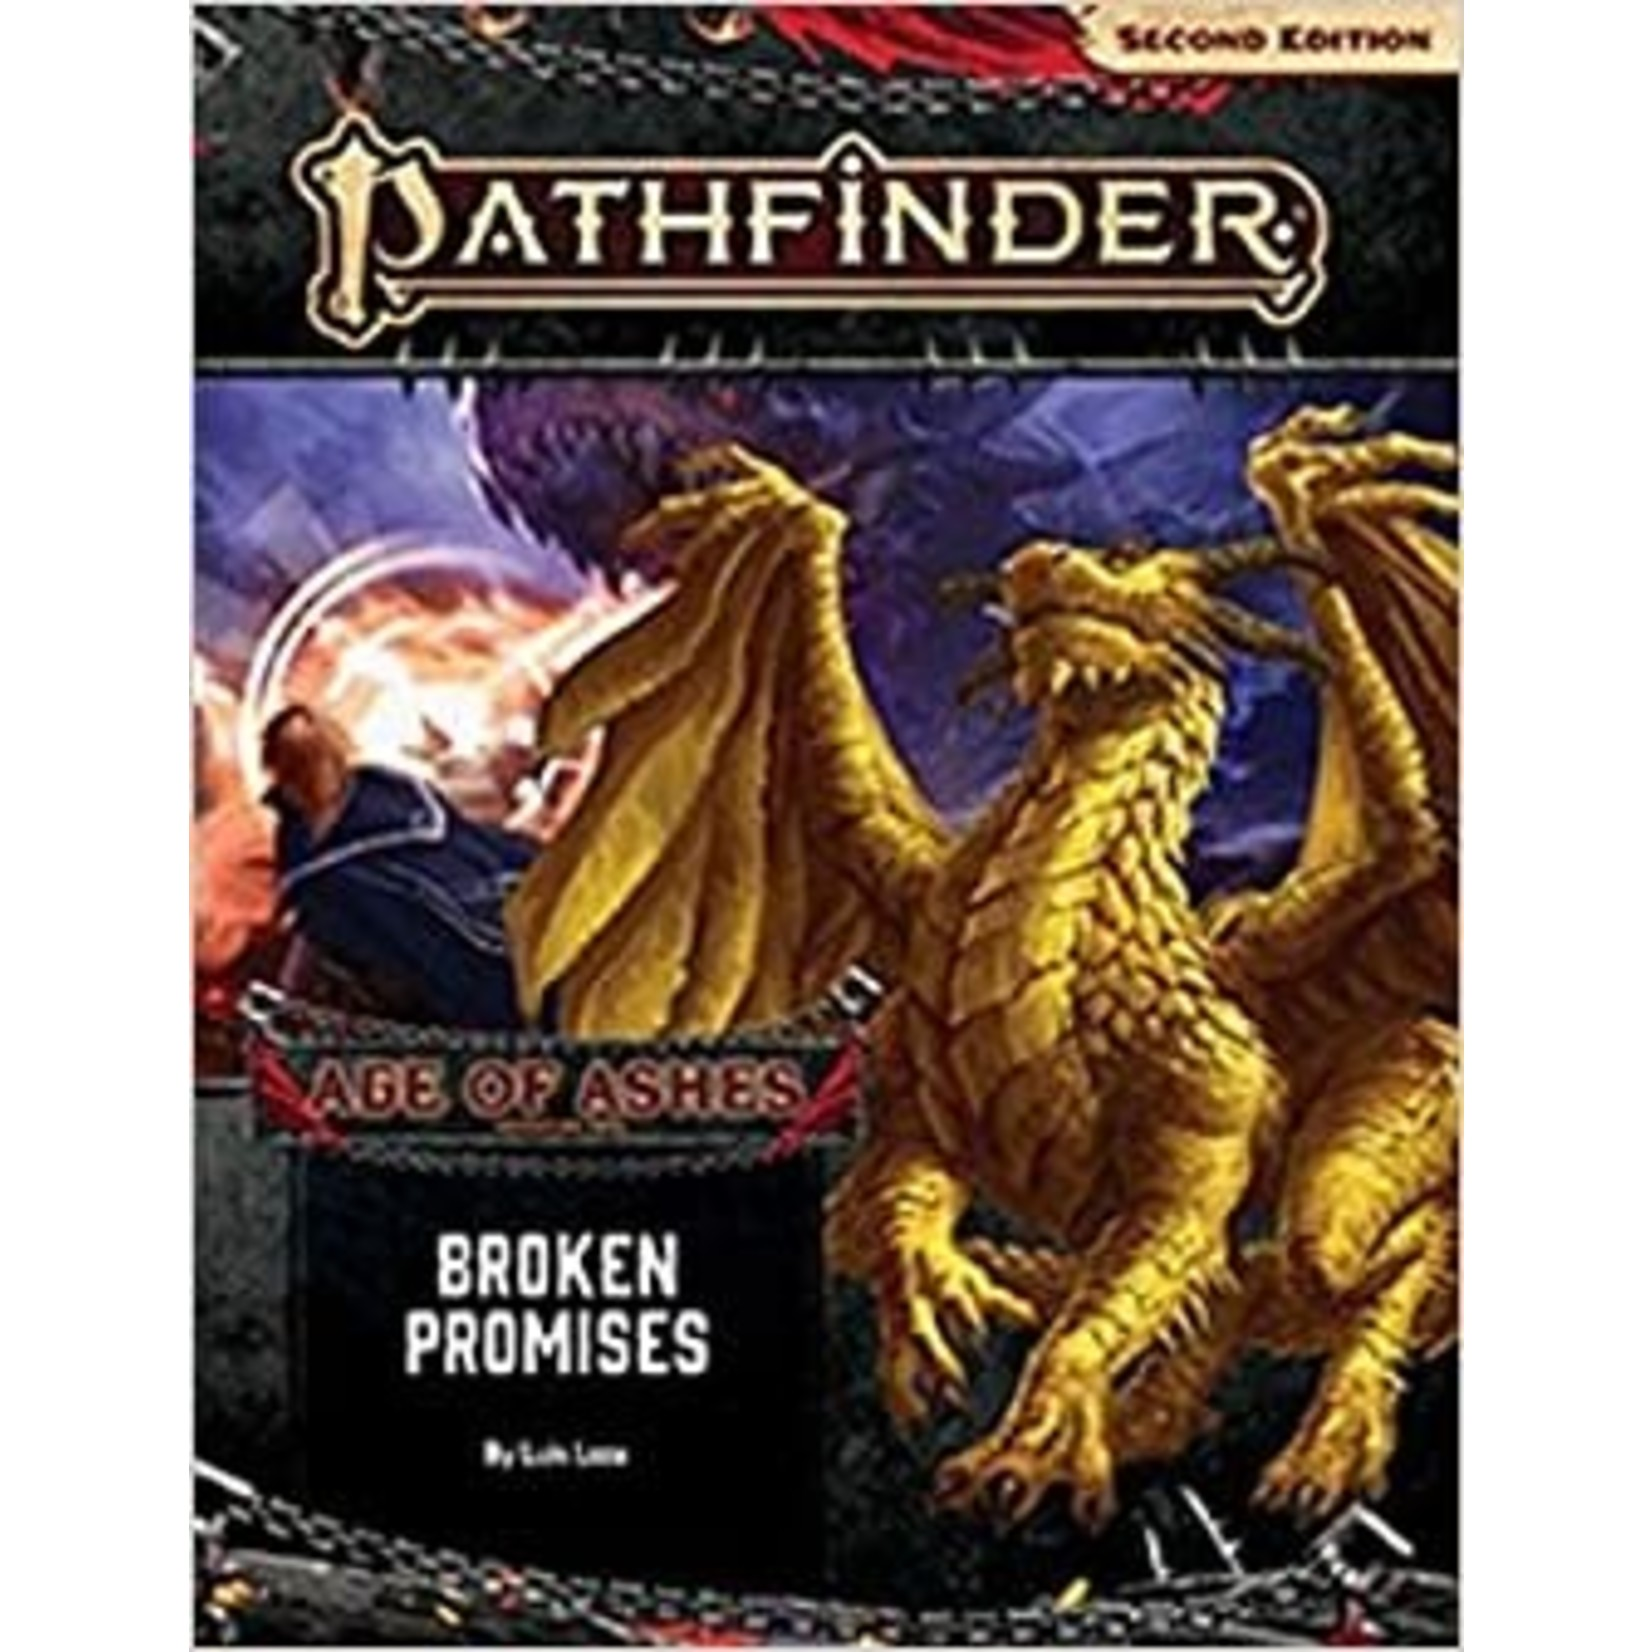 Pathfinder 2e Adventure Path: Broken Promises (Ages of Ashes #6)